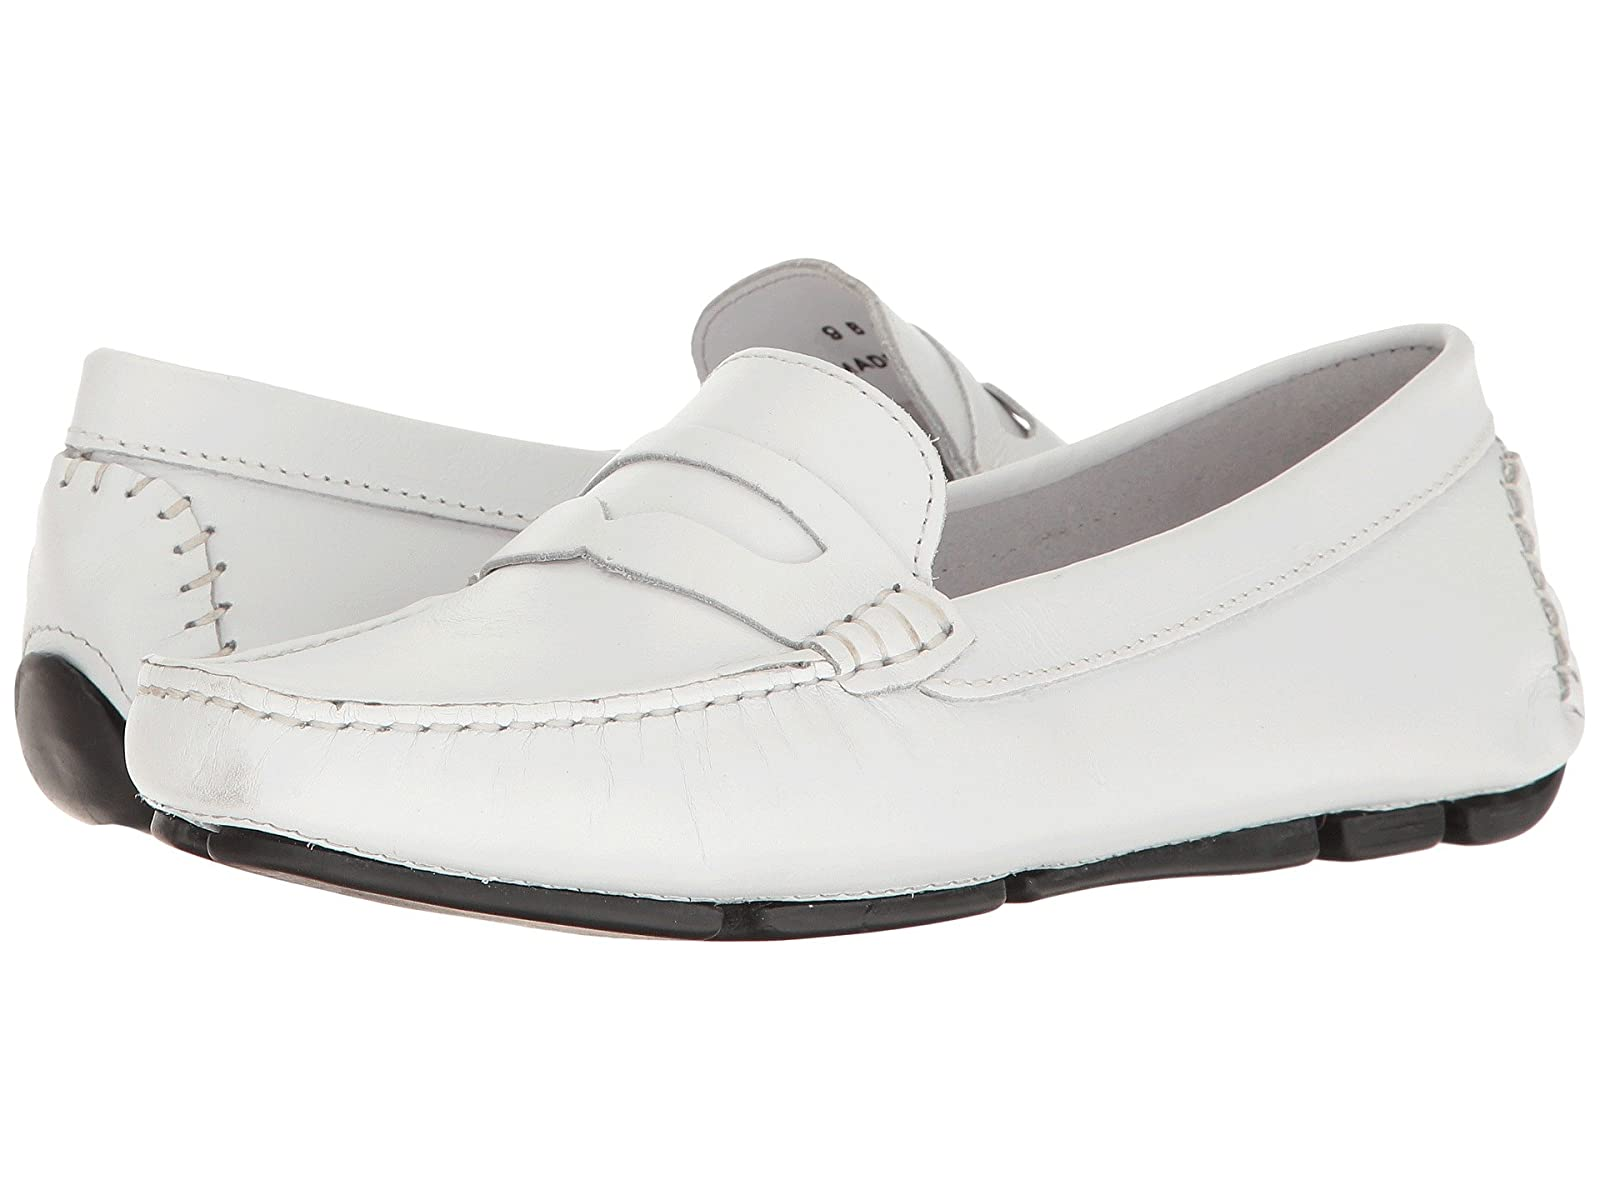 Men's/Women's:Massimo Men's/Women's:Massimo Men's/Women's:Massimo Matteo Penny Keeper: Up-to-date-styling 544af0